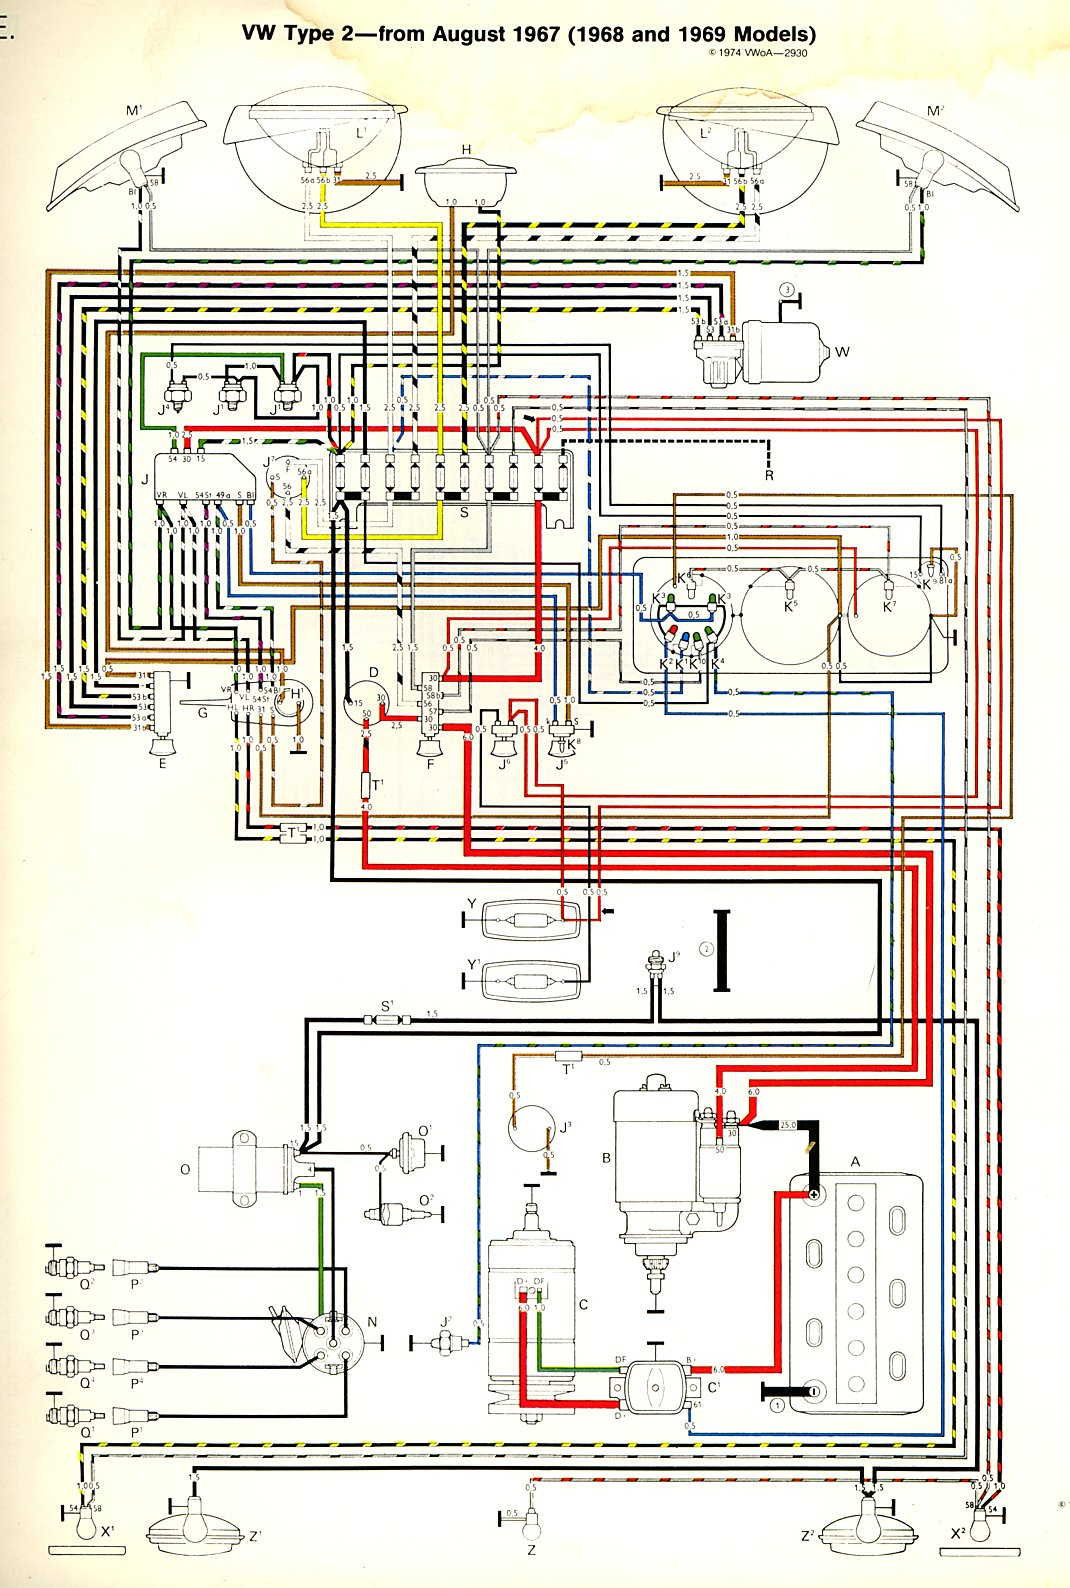 baybus_6869a bus wiring diagram vw wiring harness diagram \u2022 wiring diagrams j vw type 3 wiring harness at aneh.co